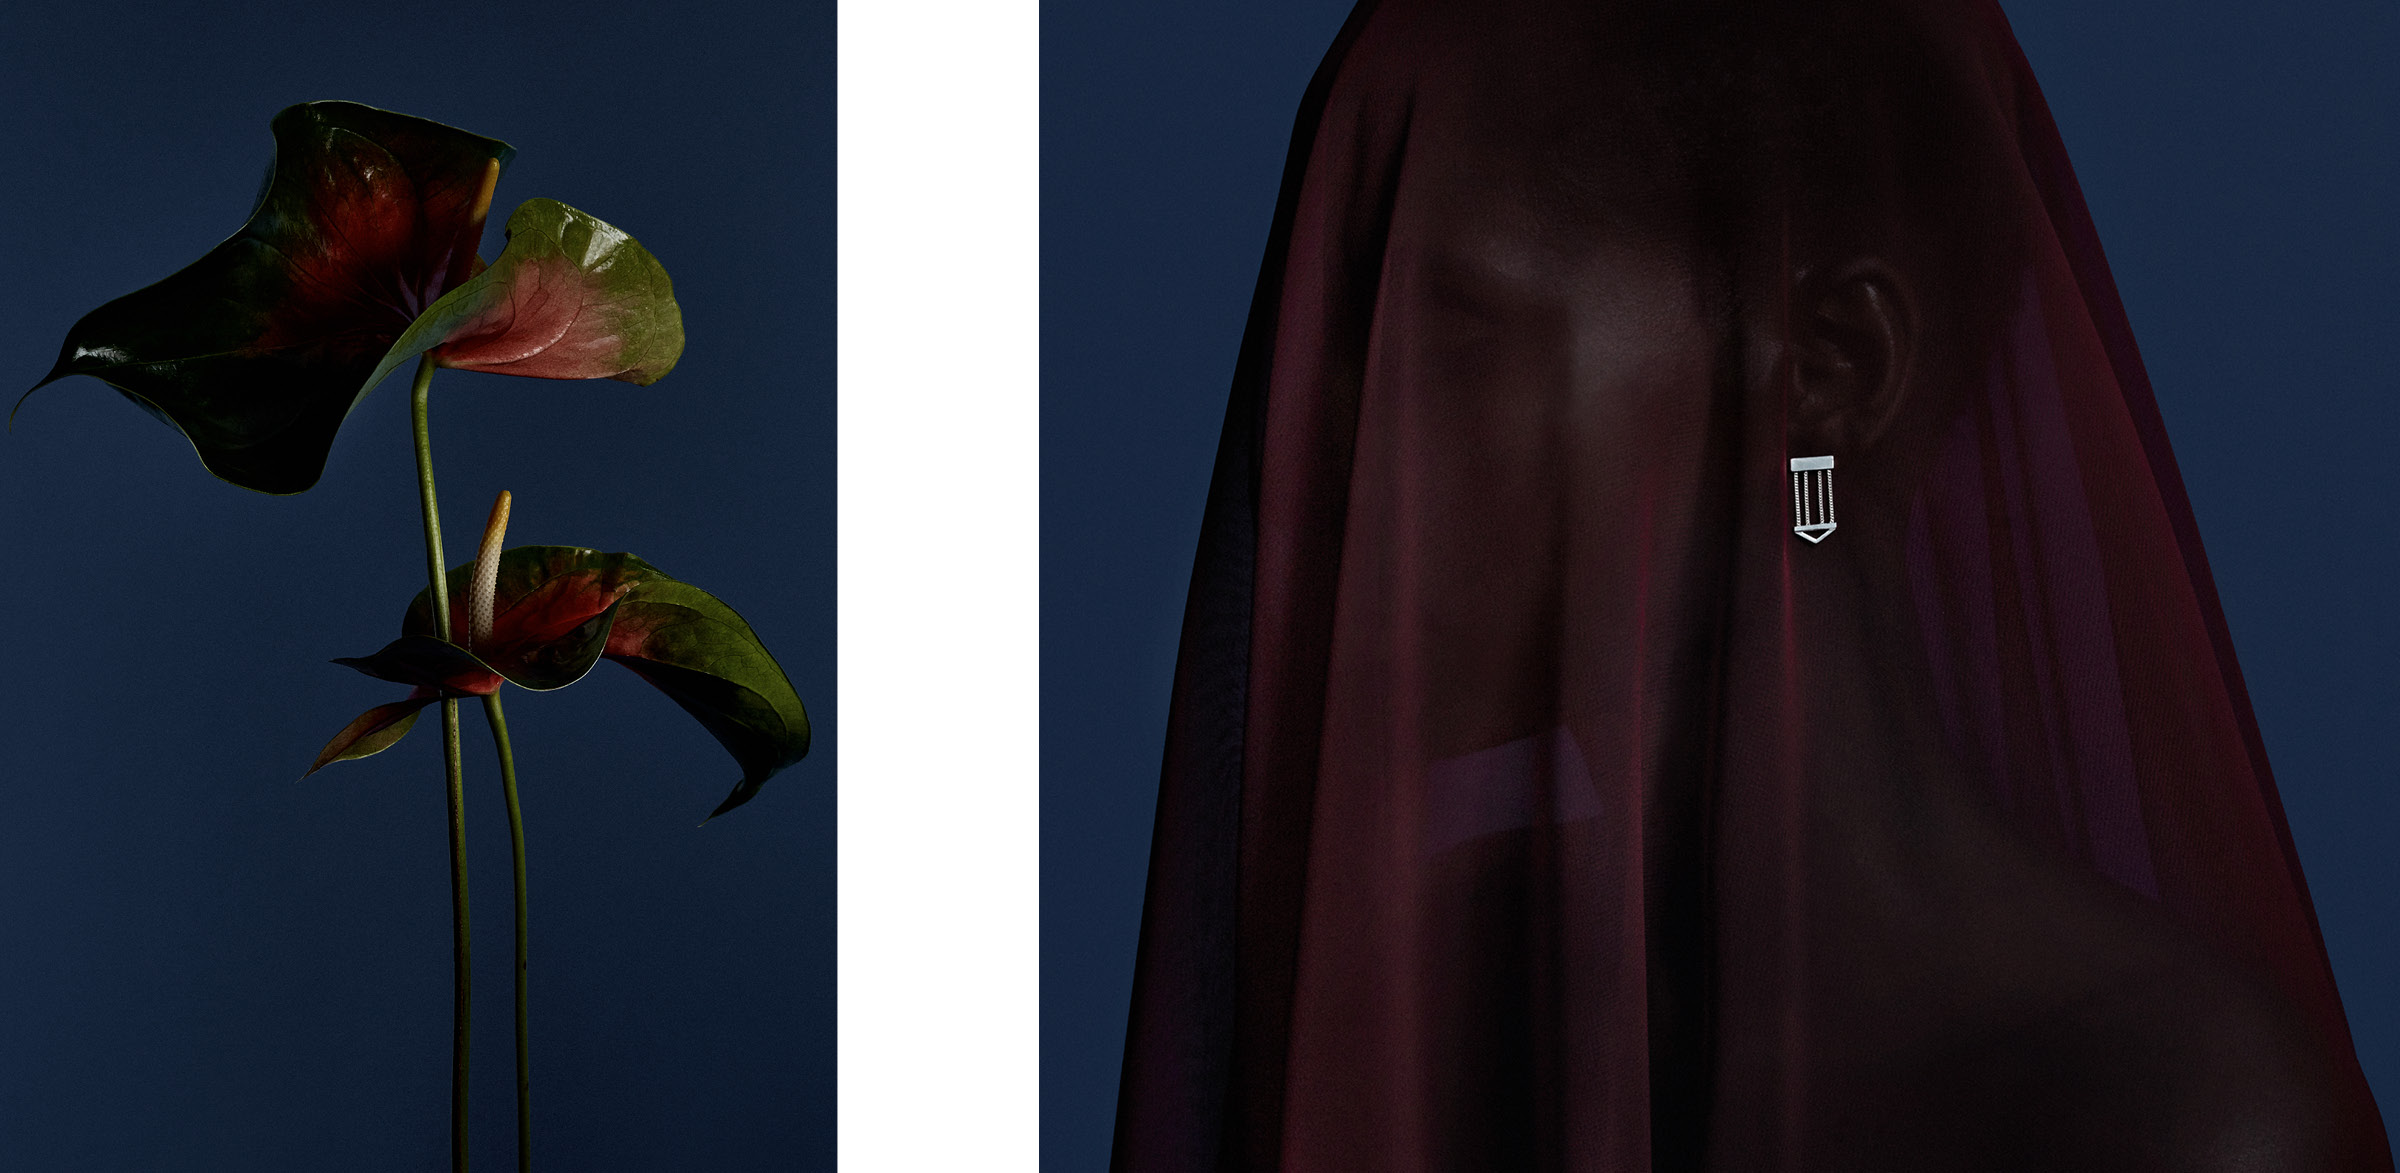 Images of flower and portrait for a jewelry campaign by DTE Studio for Bliss Lau.